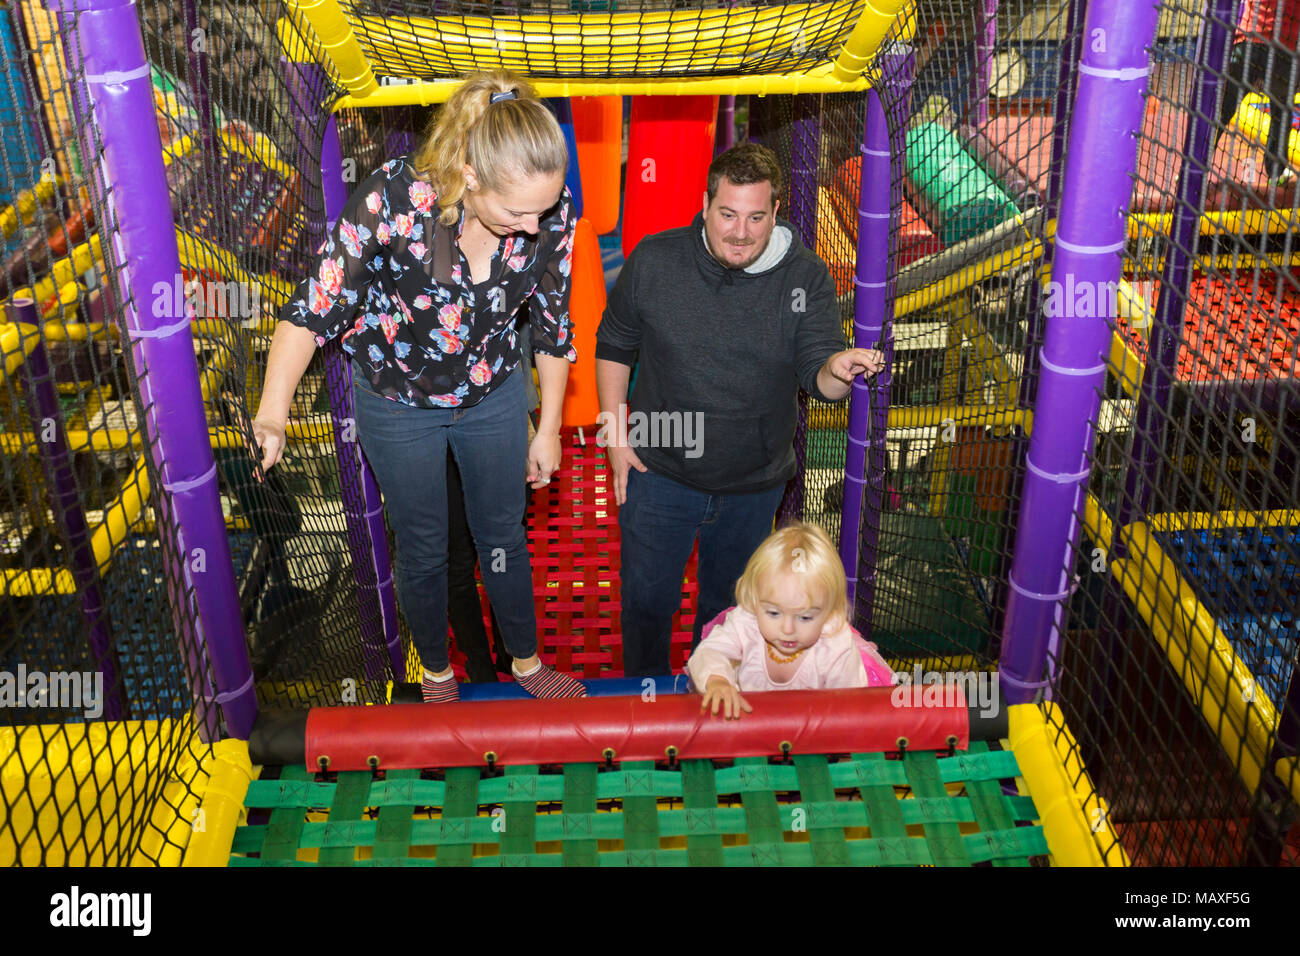 parents with child climbing stair at Cosmic Adventures indoor playground, Ottawa, Ontario, Canada - Stock Image